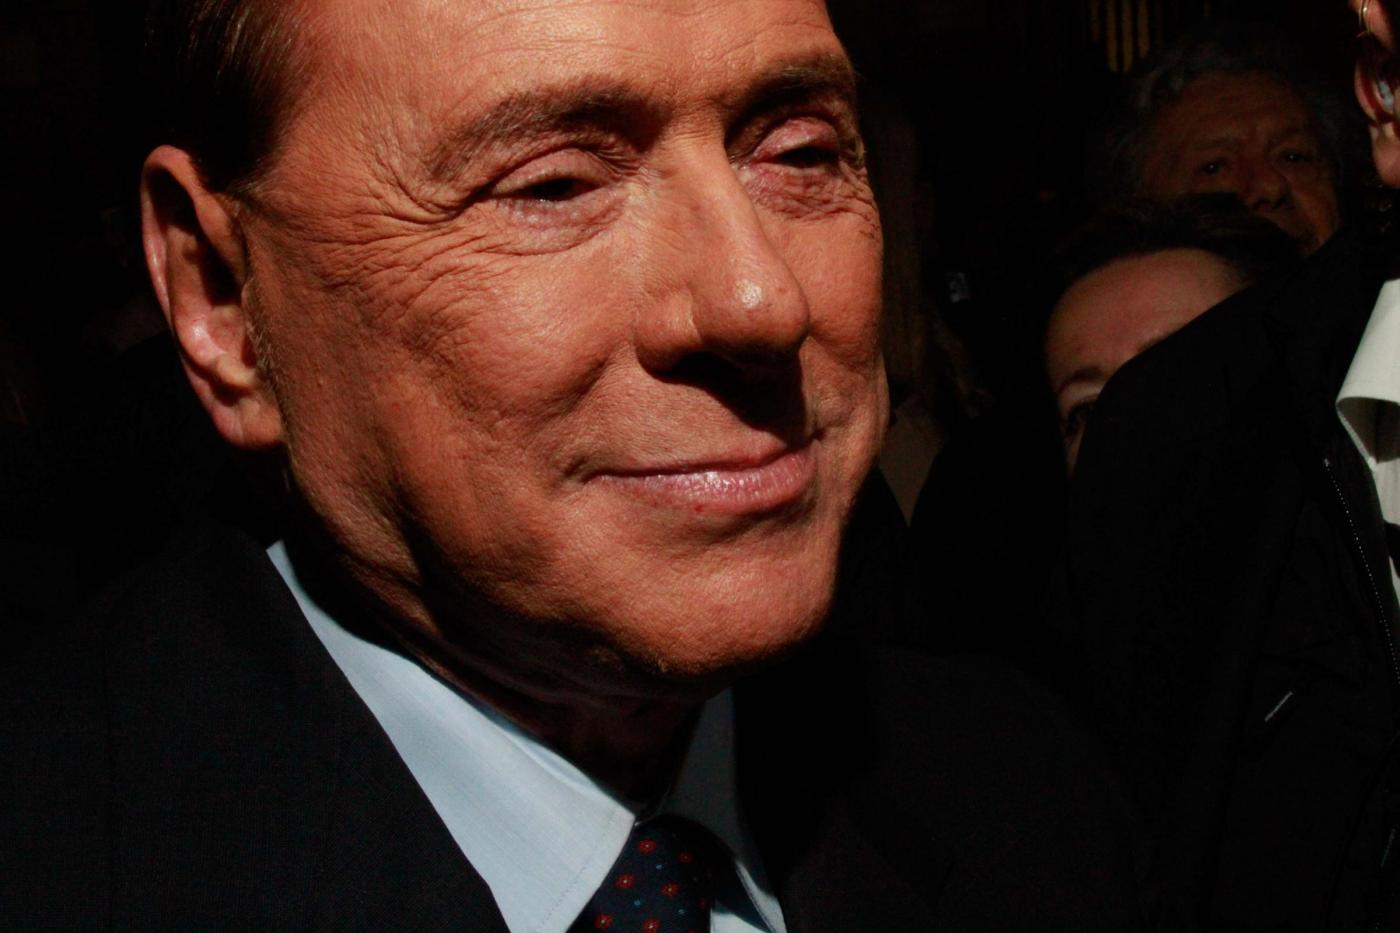 silvio berlusconi 2017-9-27  silvio berlusconi, the italian prime minister, will face trial on charges of abuse of office and paying for sex with an underage prostitute in april.